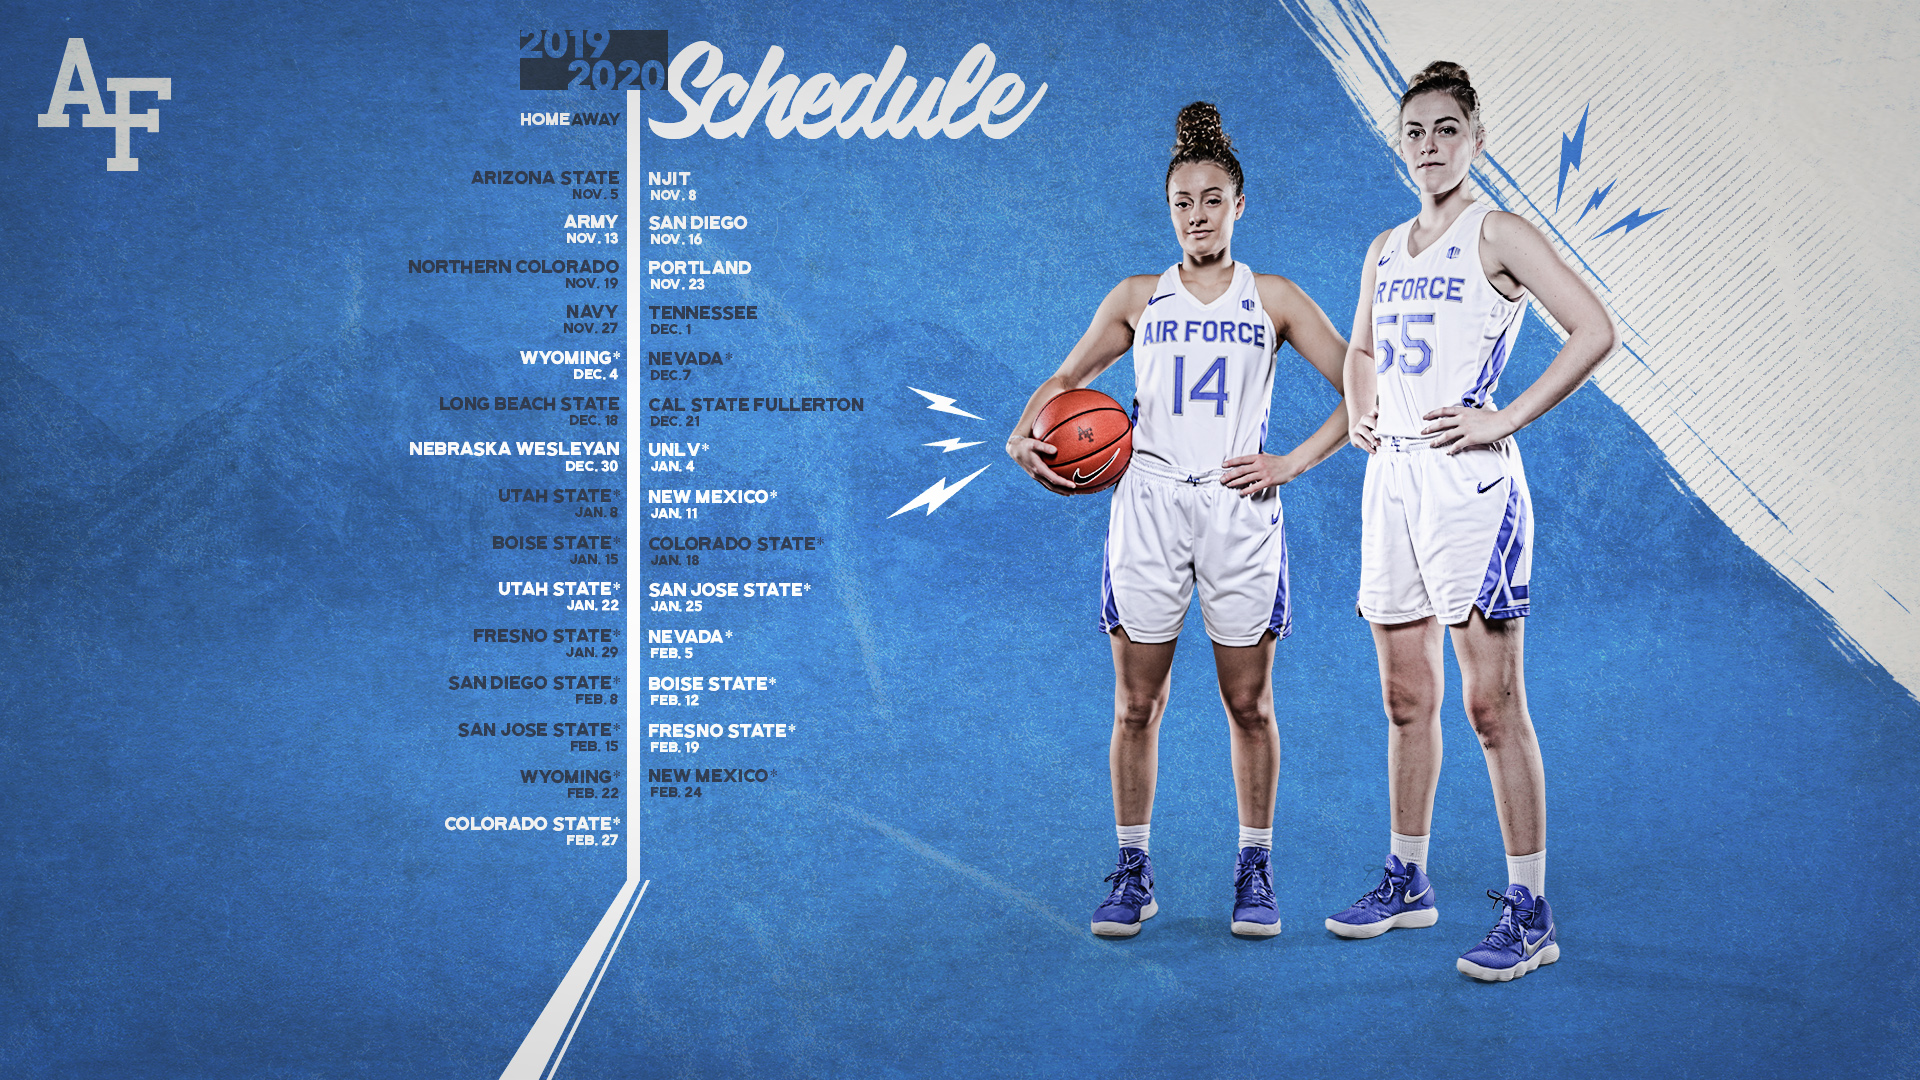 February 20th 2020 Utah Court Calendar Women's Hoops Announces 2019 20 Schedule   Air Force Academy Athletics